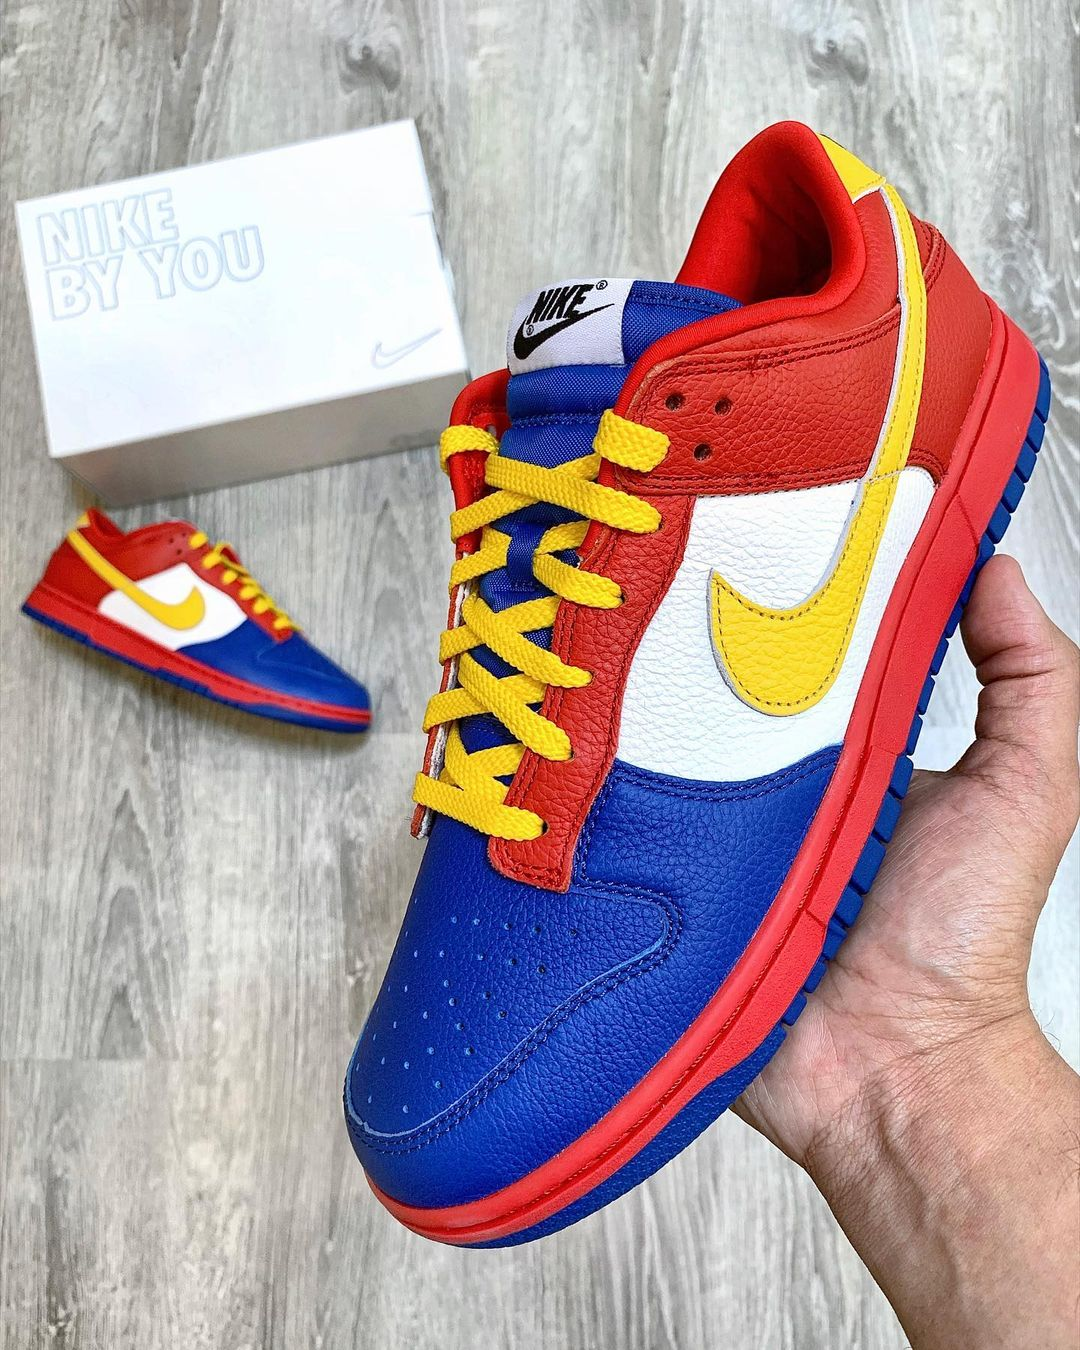 Nike Dunk Low by you Philippine pinoymikee